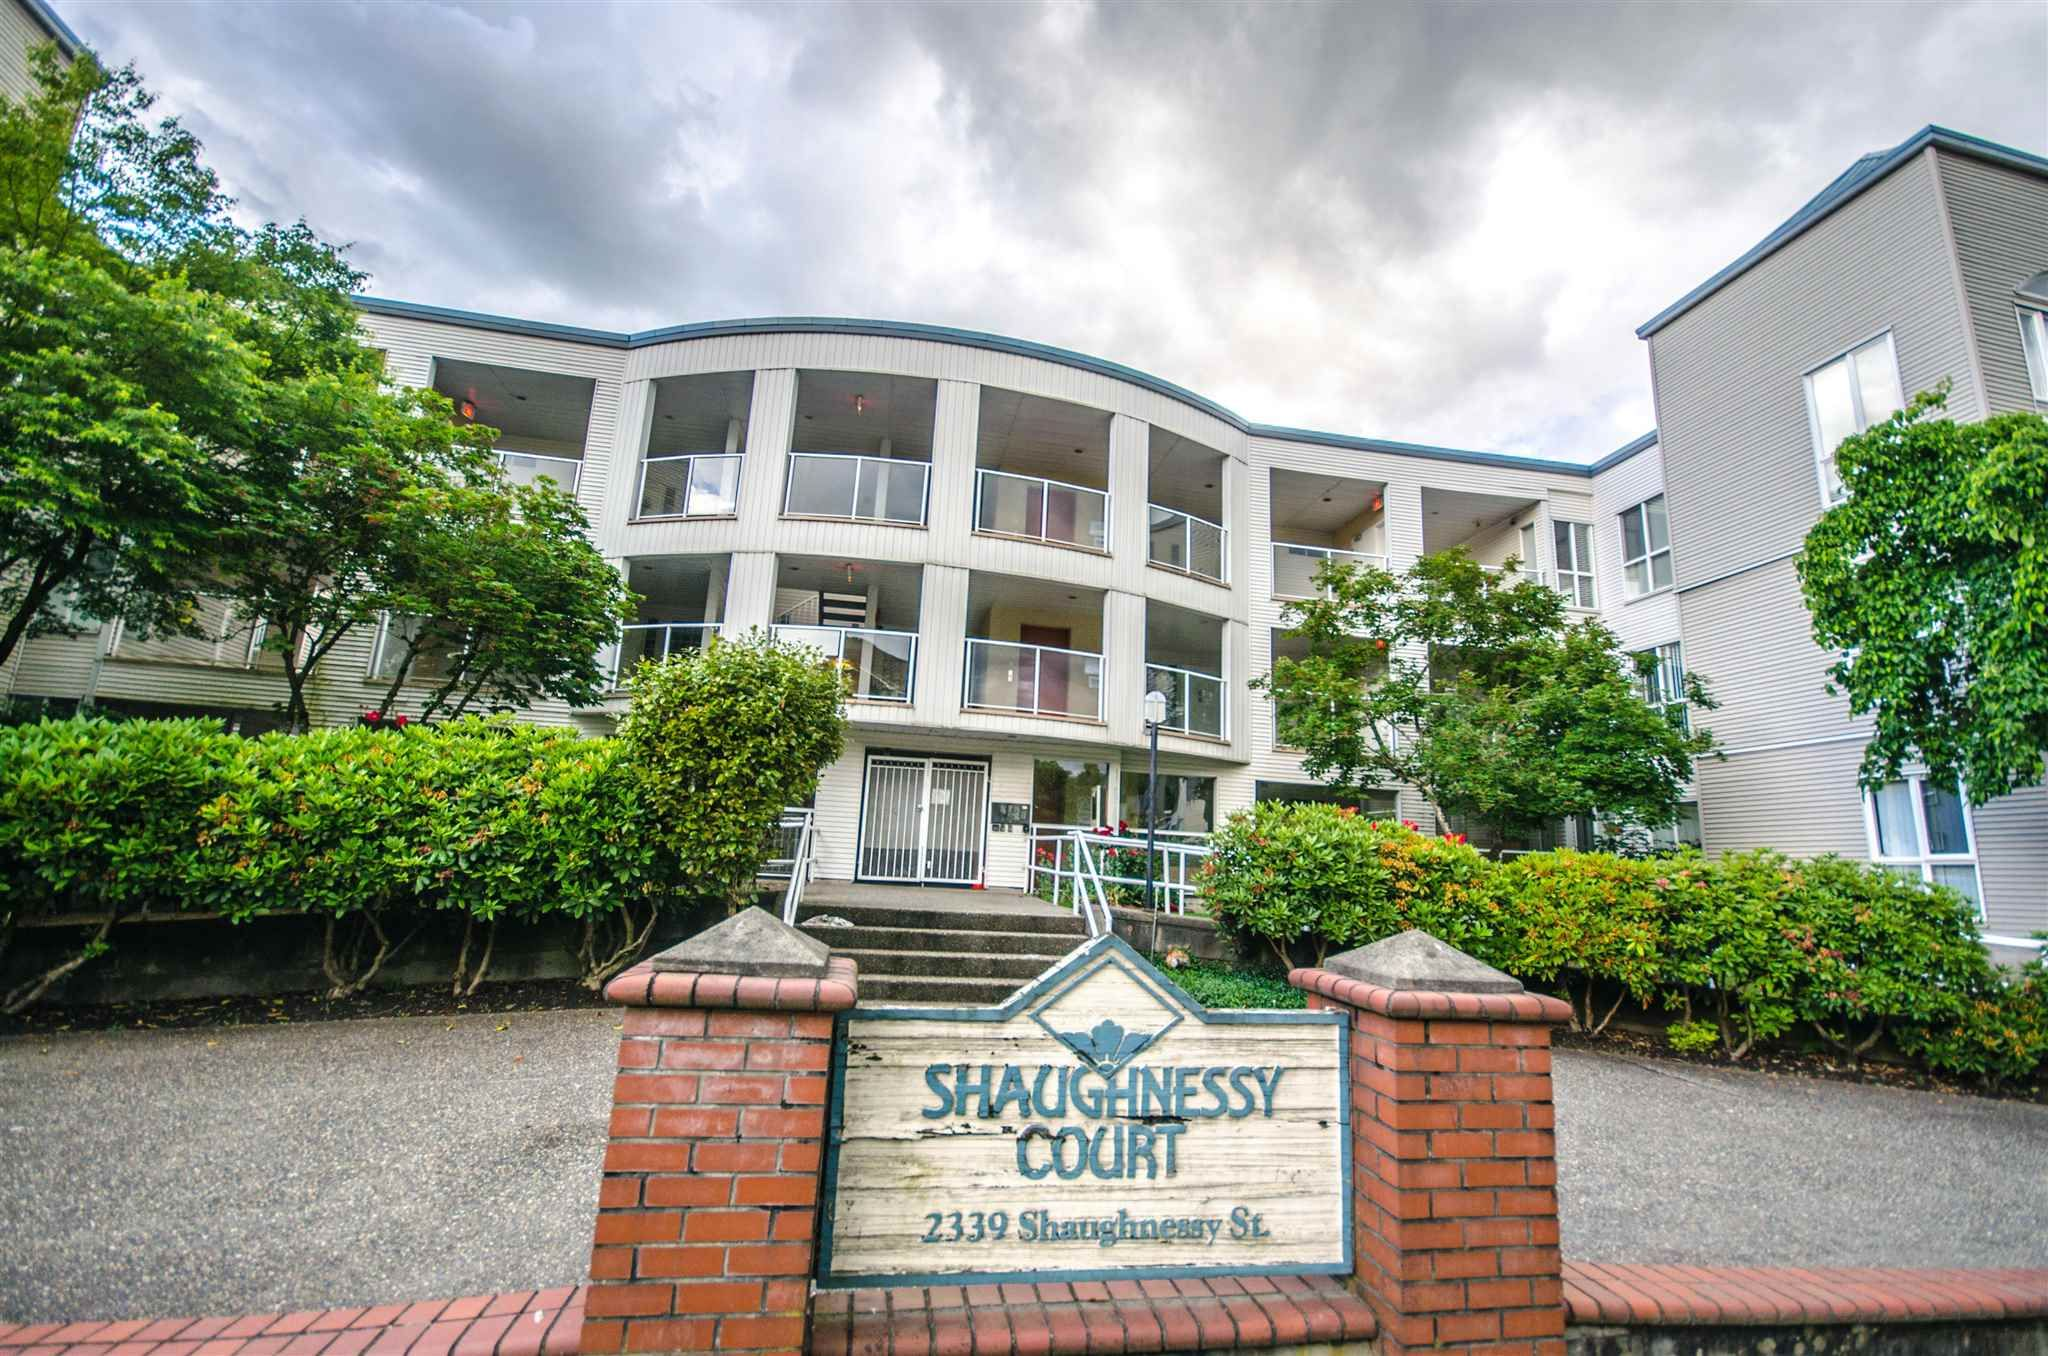 """Main Photo: 308 2339 SHAUGHNESSY Street in Port Coquitlam: Central Pt Coquitlam Condo for sale in """"SHAUGHNESSY COURT"""" : MLS®# R2599685"""